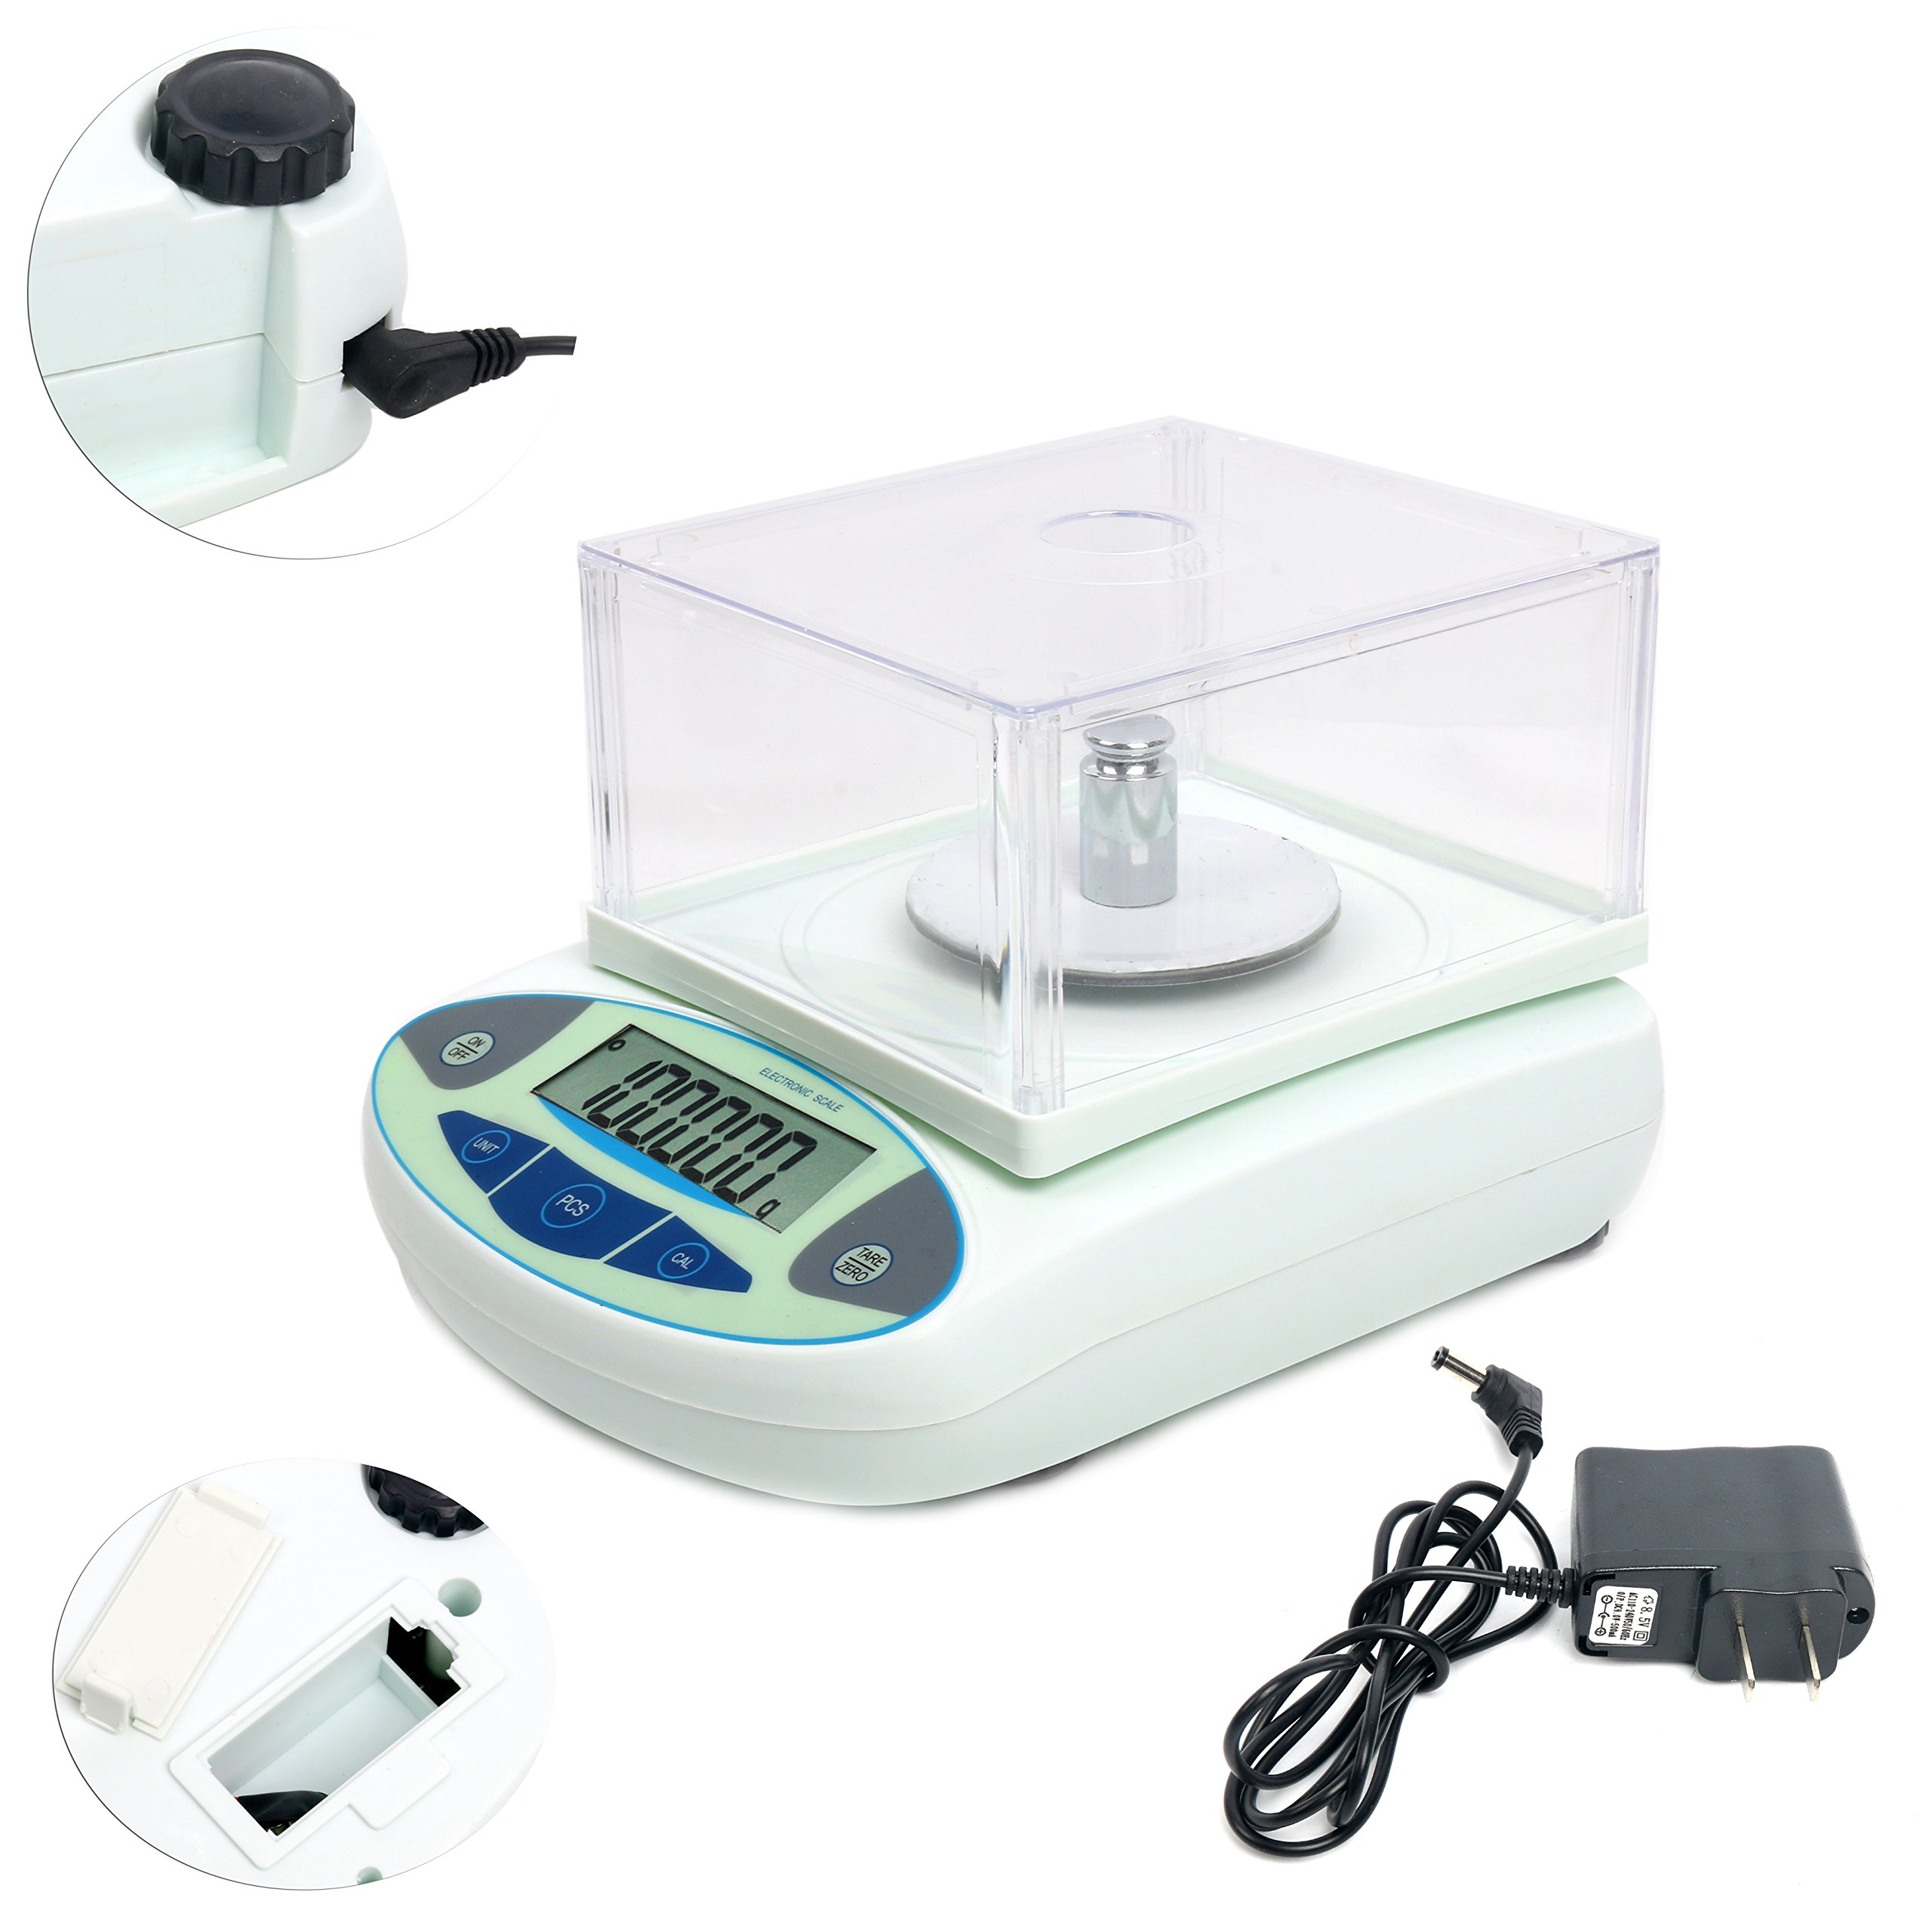 100/200 x0.001g 1mg Lab Analytical Balance Digital High Precision Balance Electronic Scale Jewelry Scale (100x0.001g) by YaeCCC